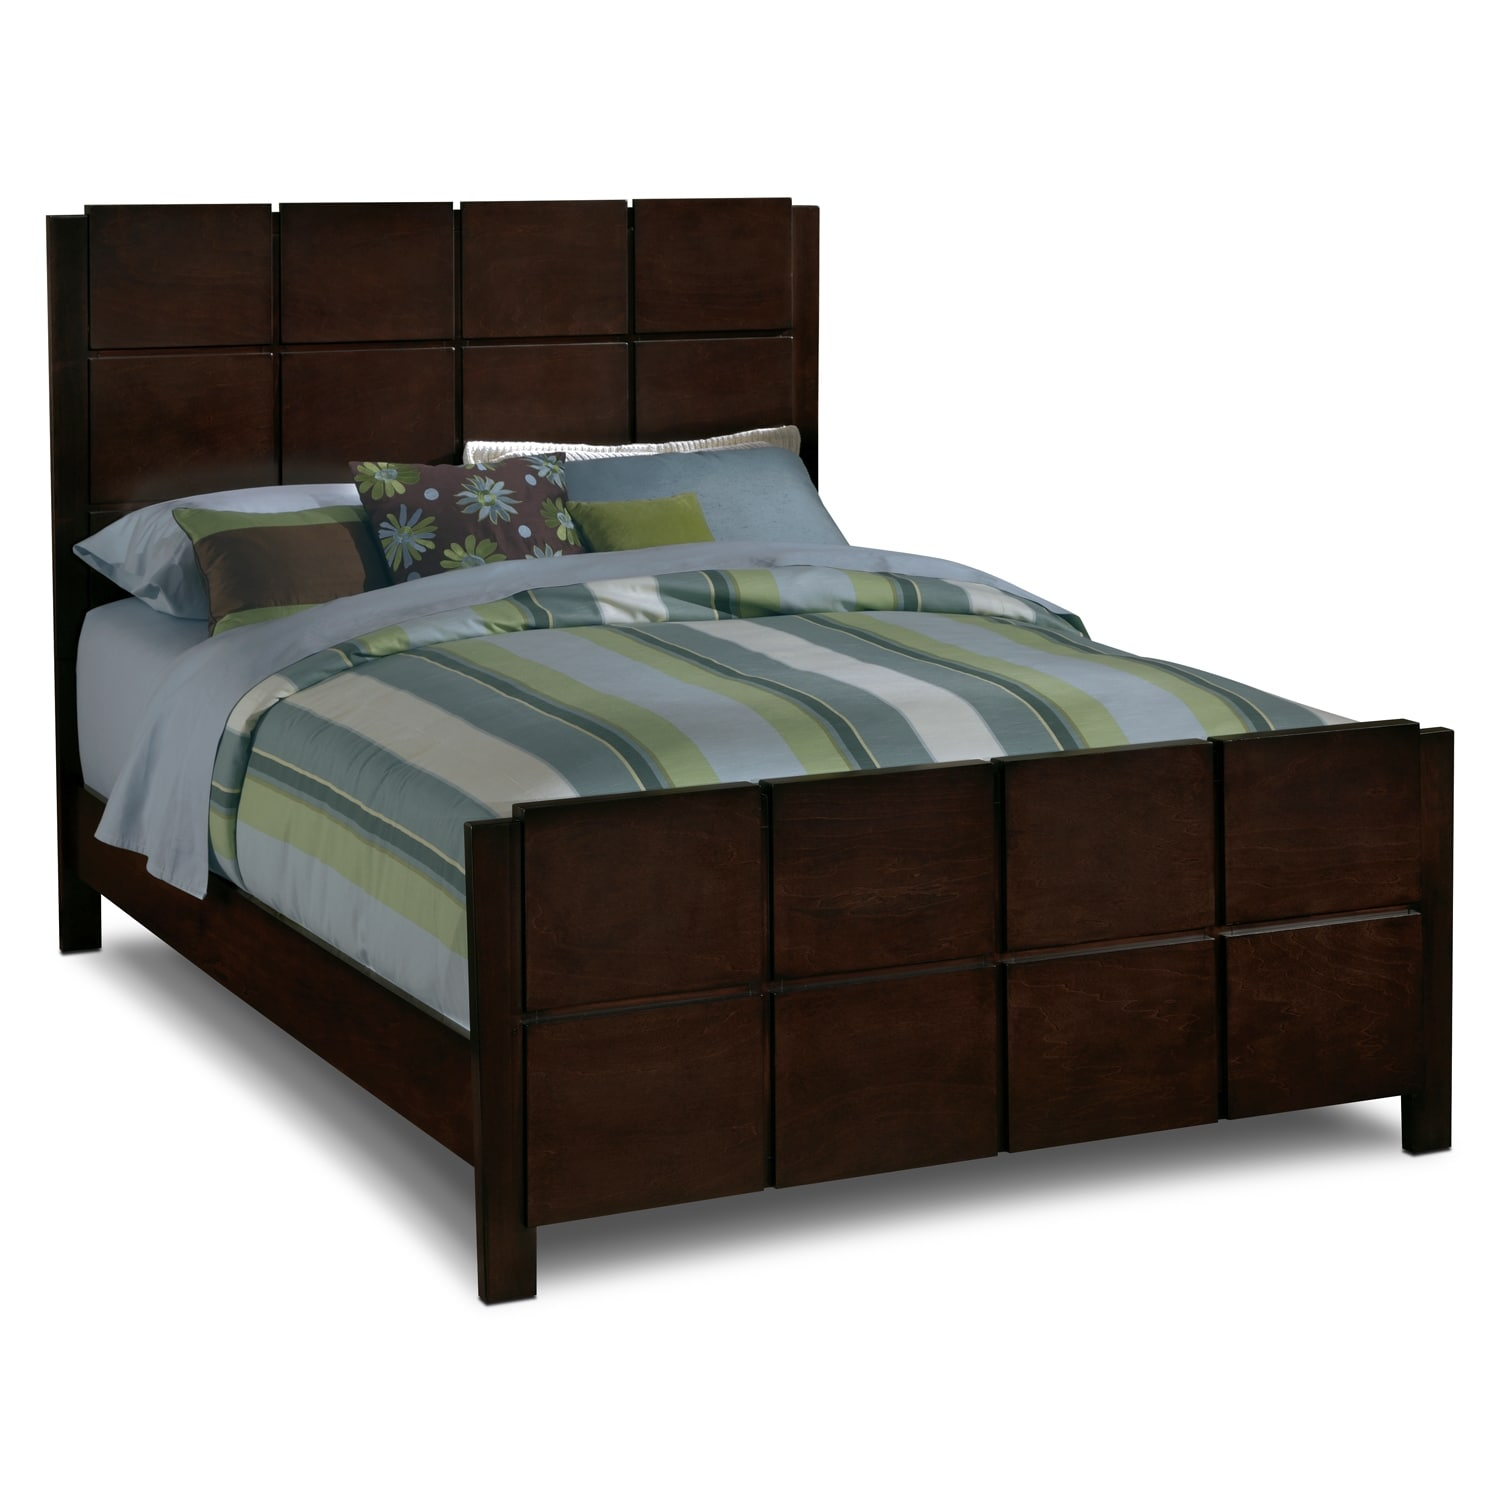 Bedroom Furniture Mosaic Bed Dark Brown